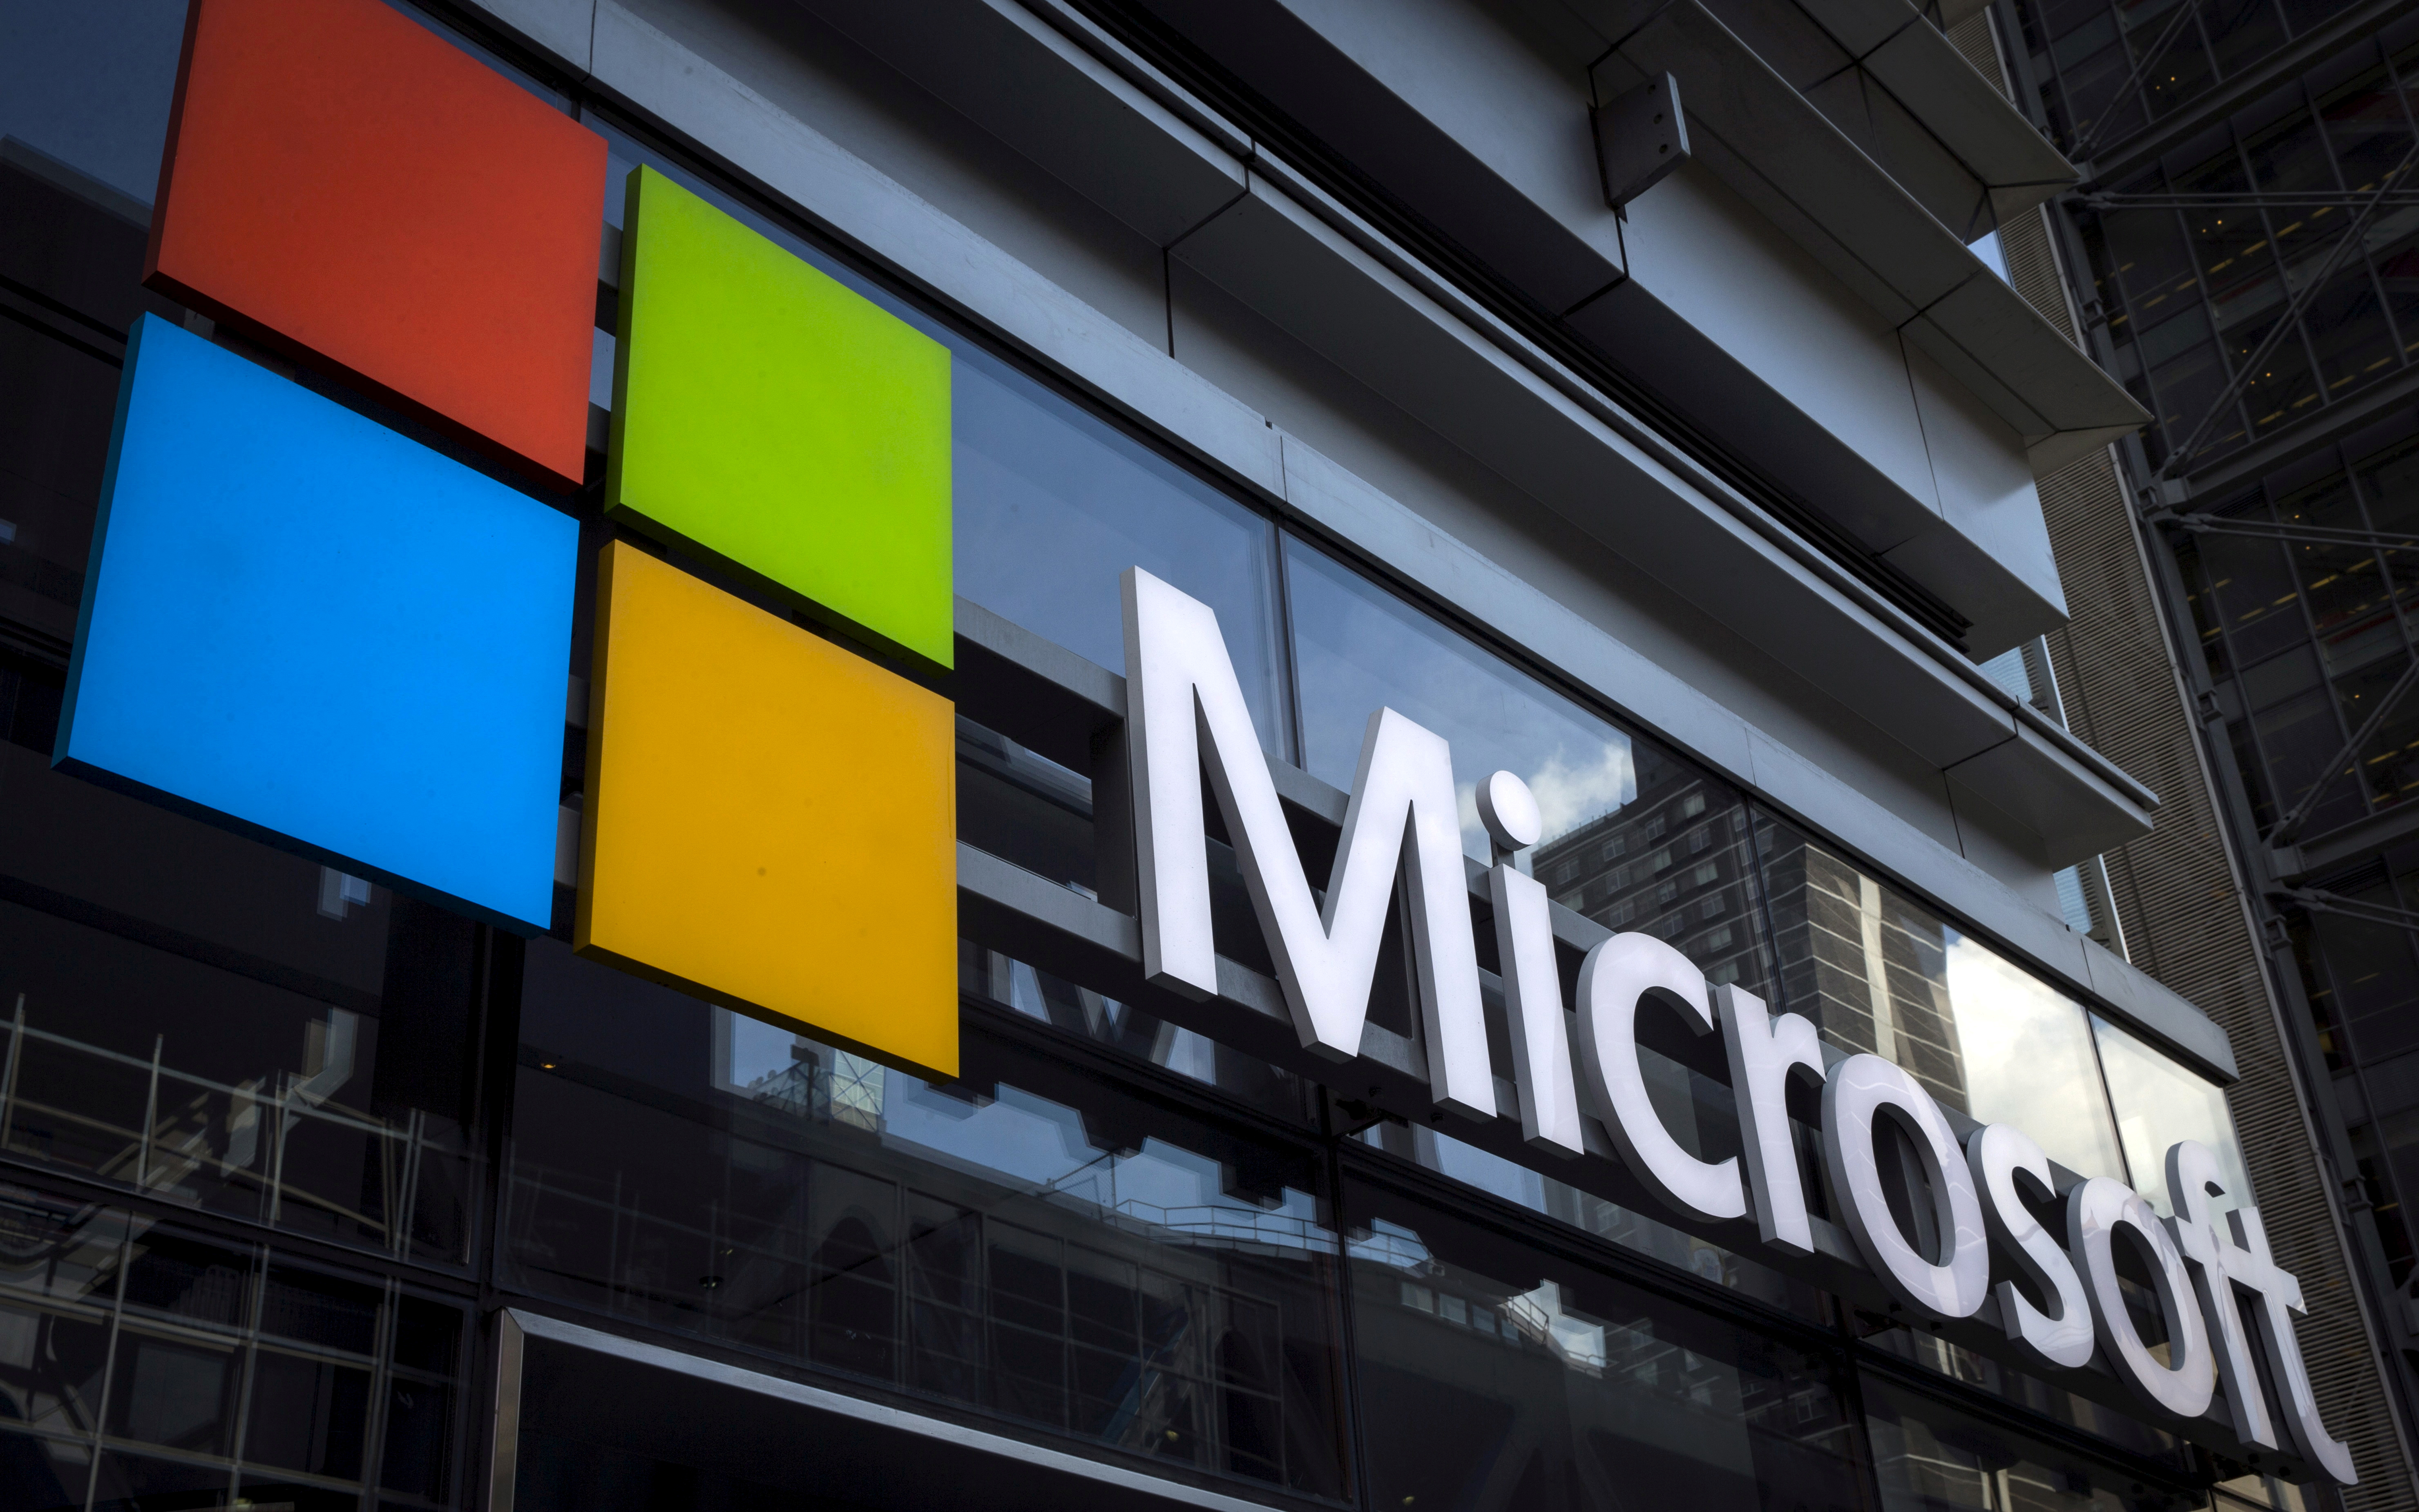 A Microsoft logo is seen on an office building in New York City on July 28, 2015. REUTERS/Mike Segar/File Photo/File Photo